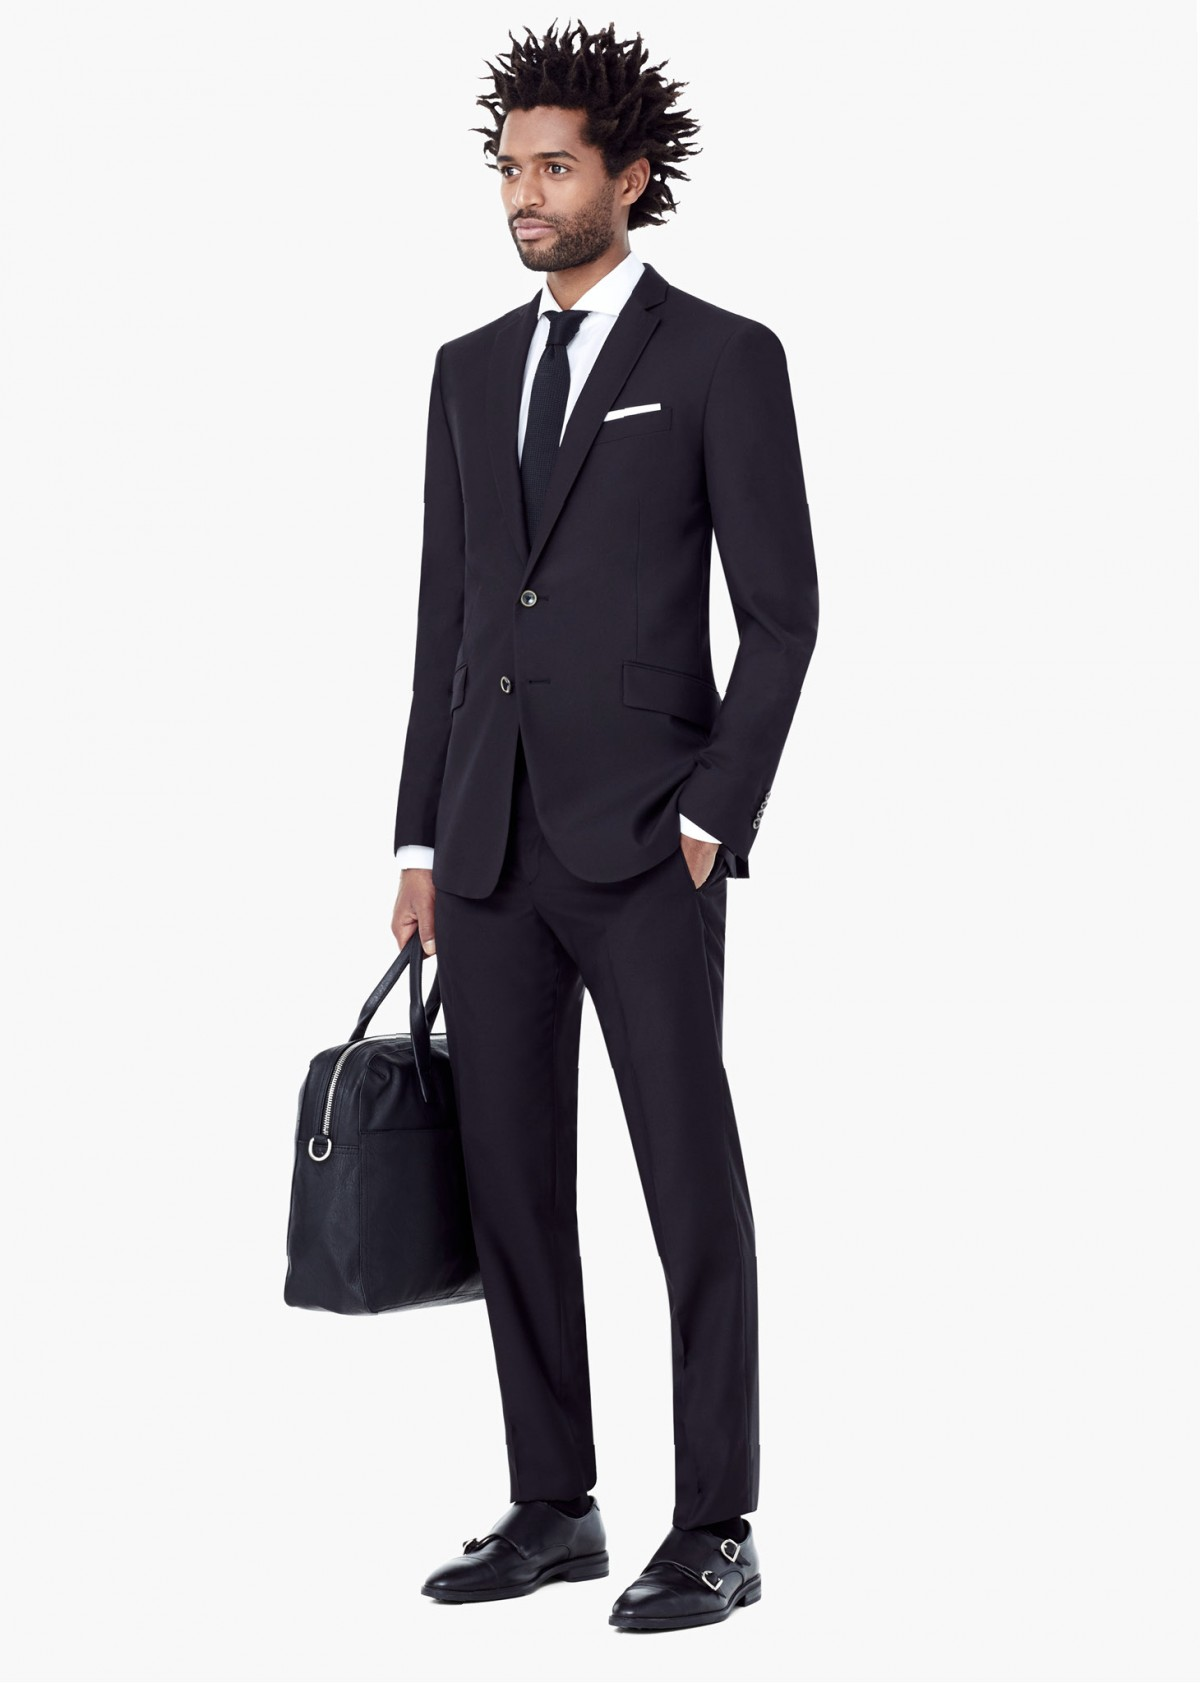 Mango Presents Fall Suiting Guide